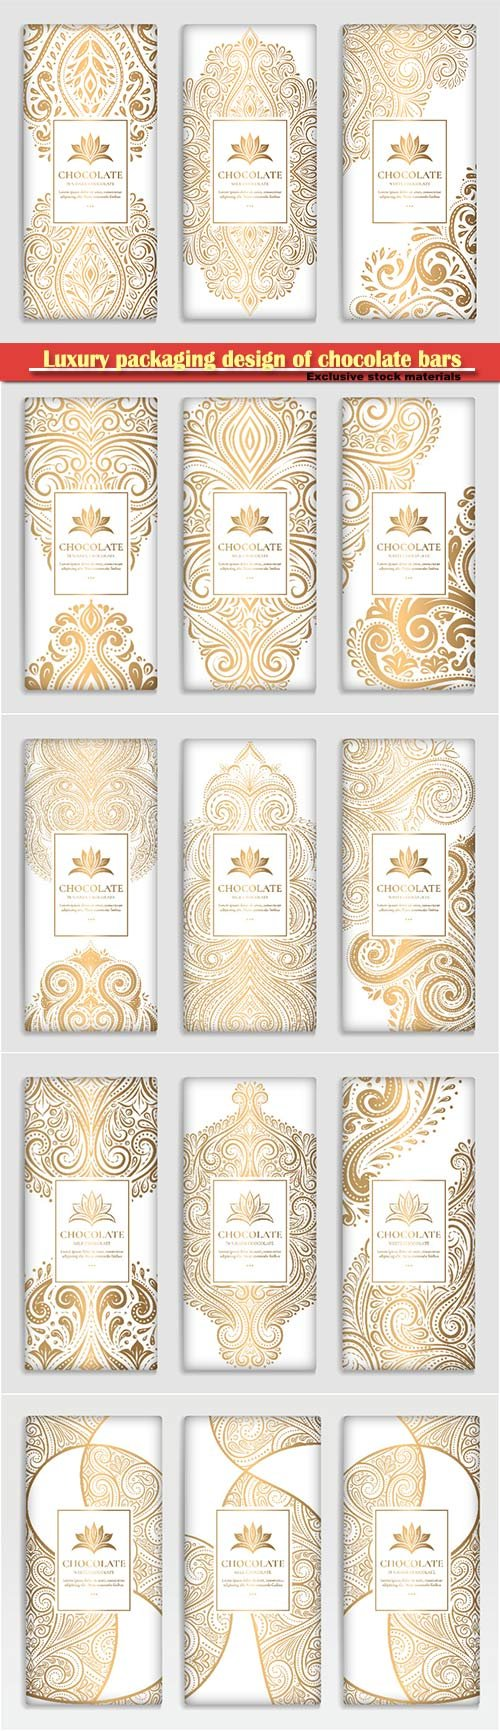 Luxury golden packaging design of chocolate bars